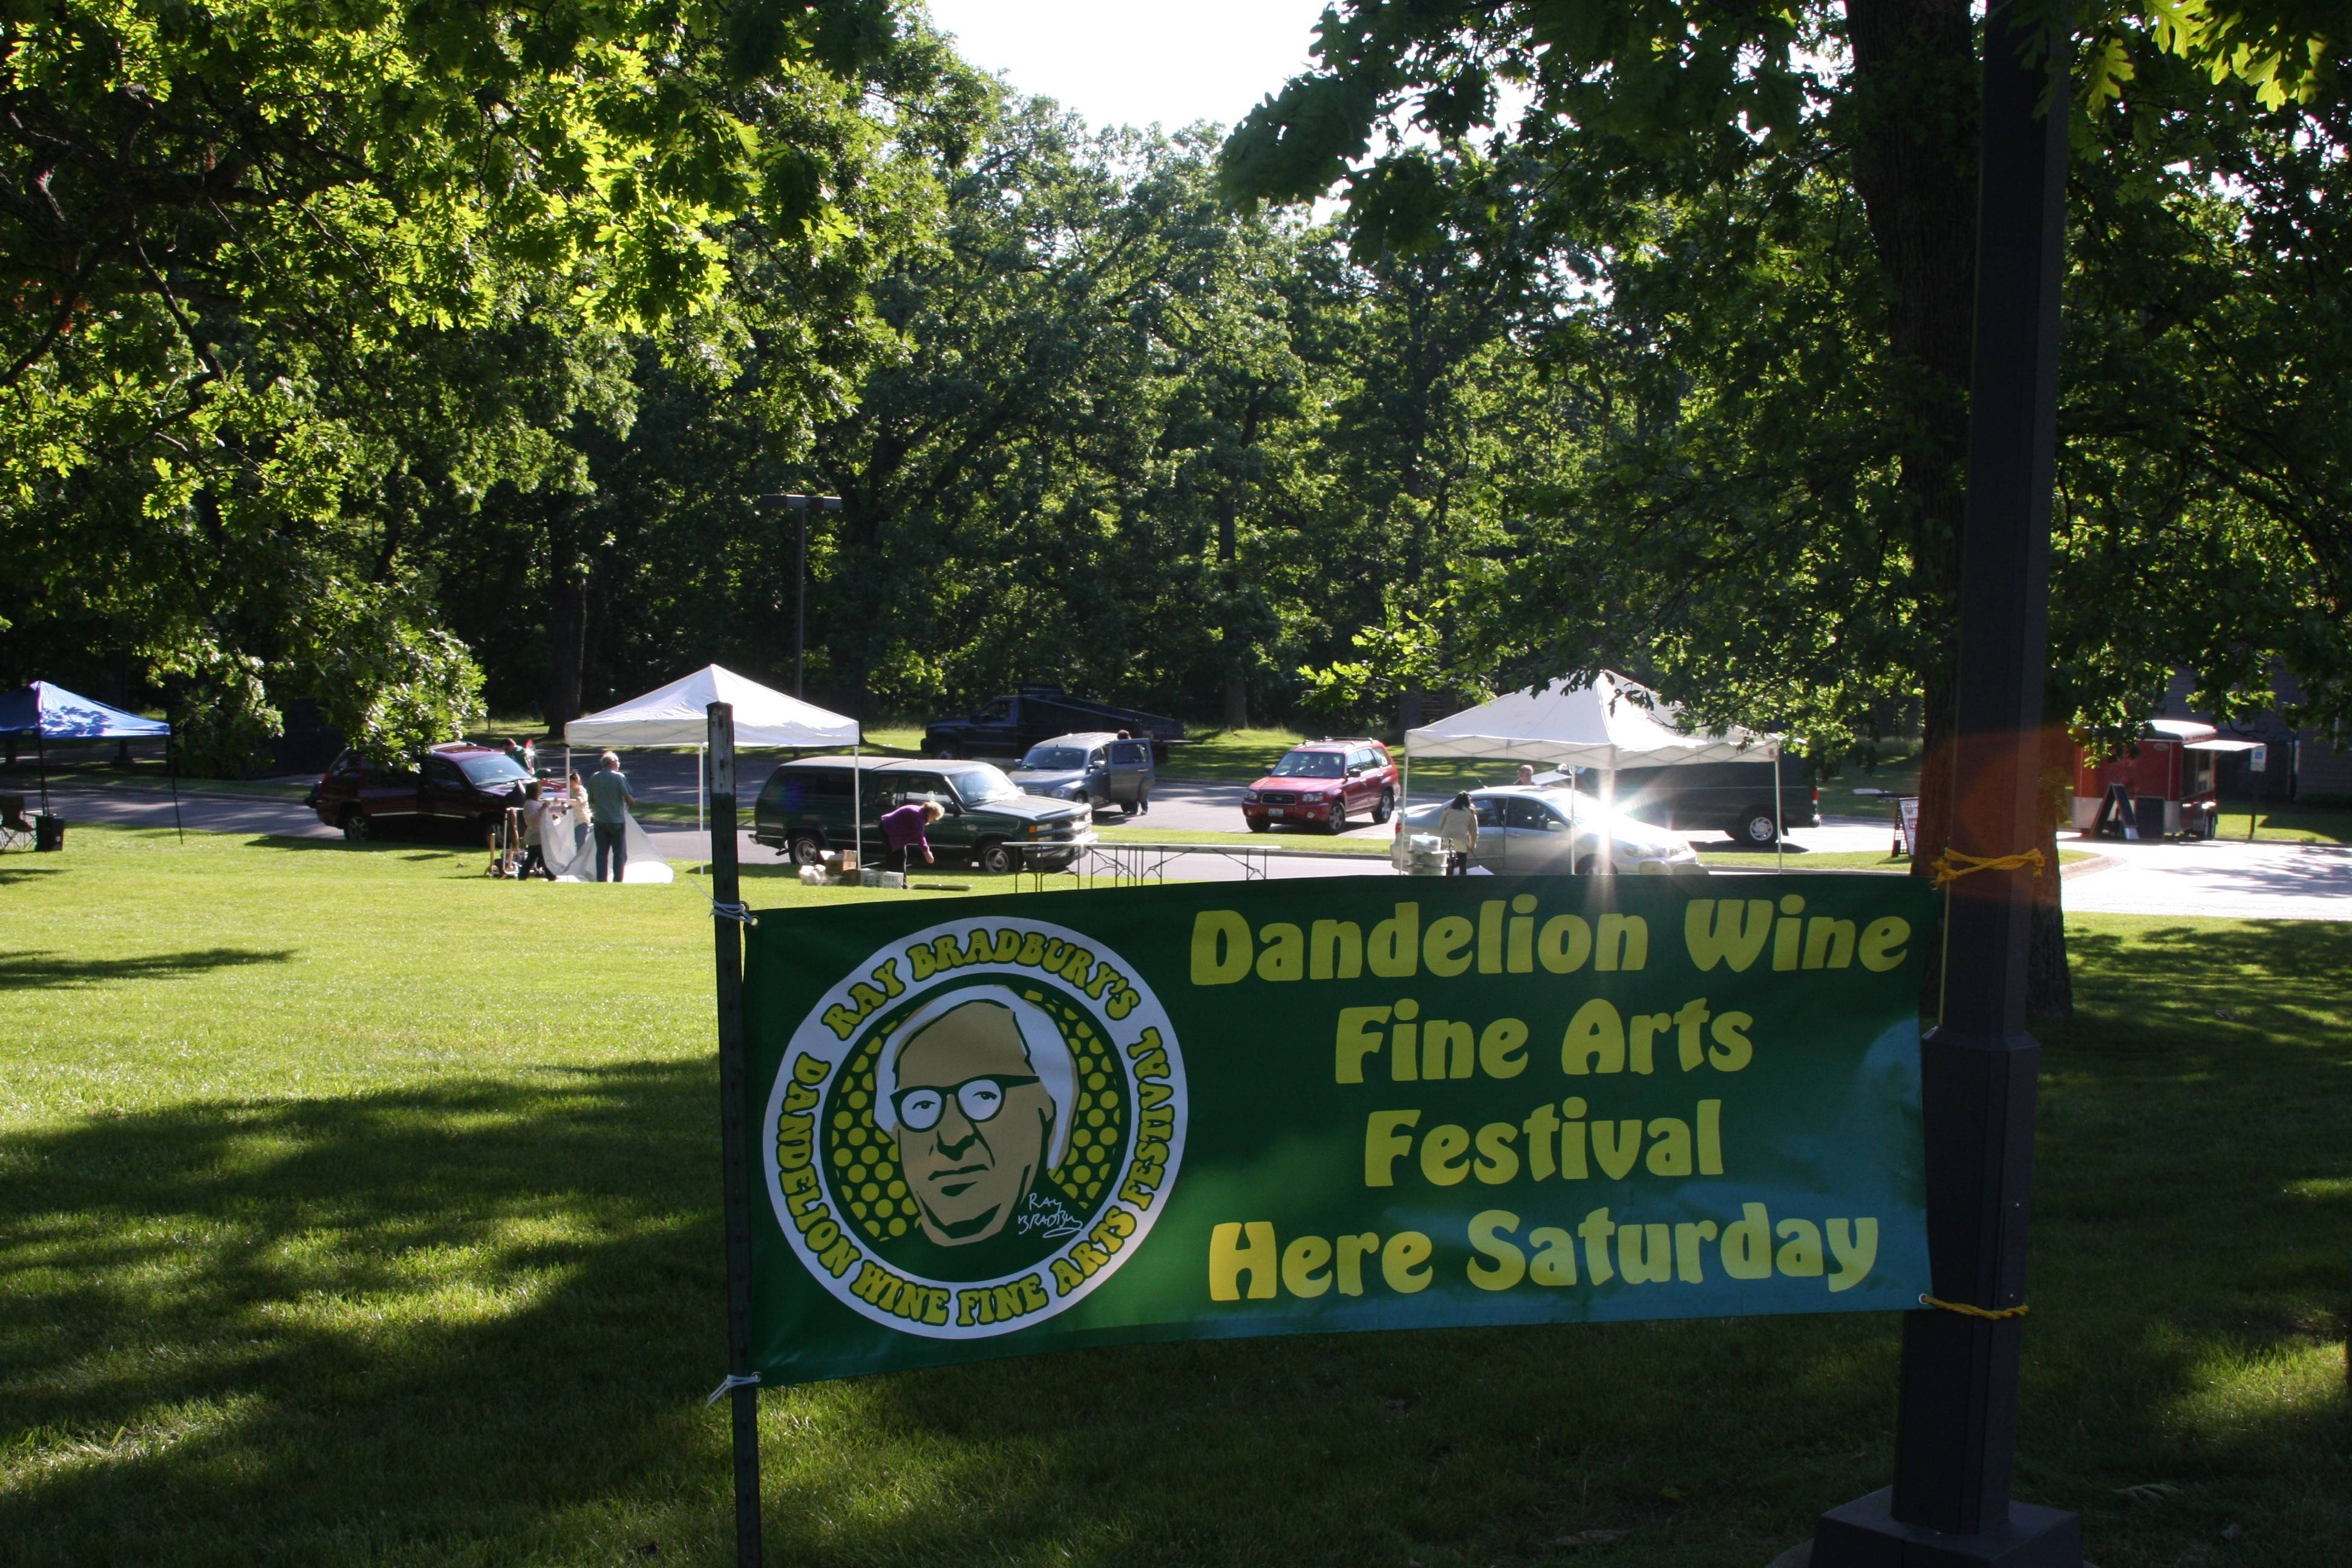 The 15 Annual Ray Bradbury Dandelion Wine Fine Arts Festival will be from 10 a.m. to 4 p.m. Saturday, June 7, at Bowen Park in Waukegan.